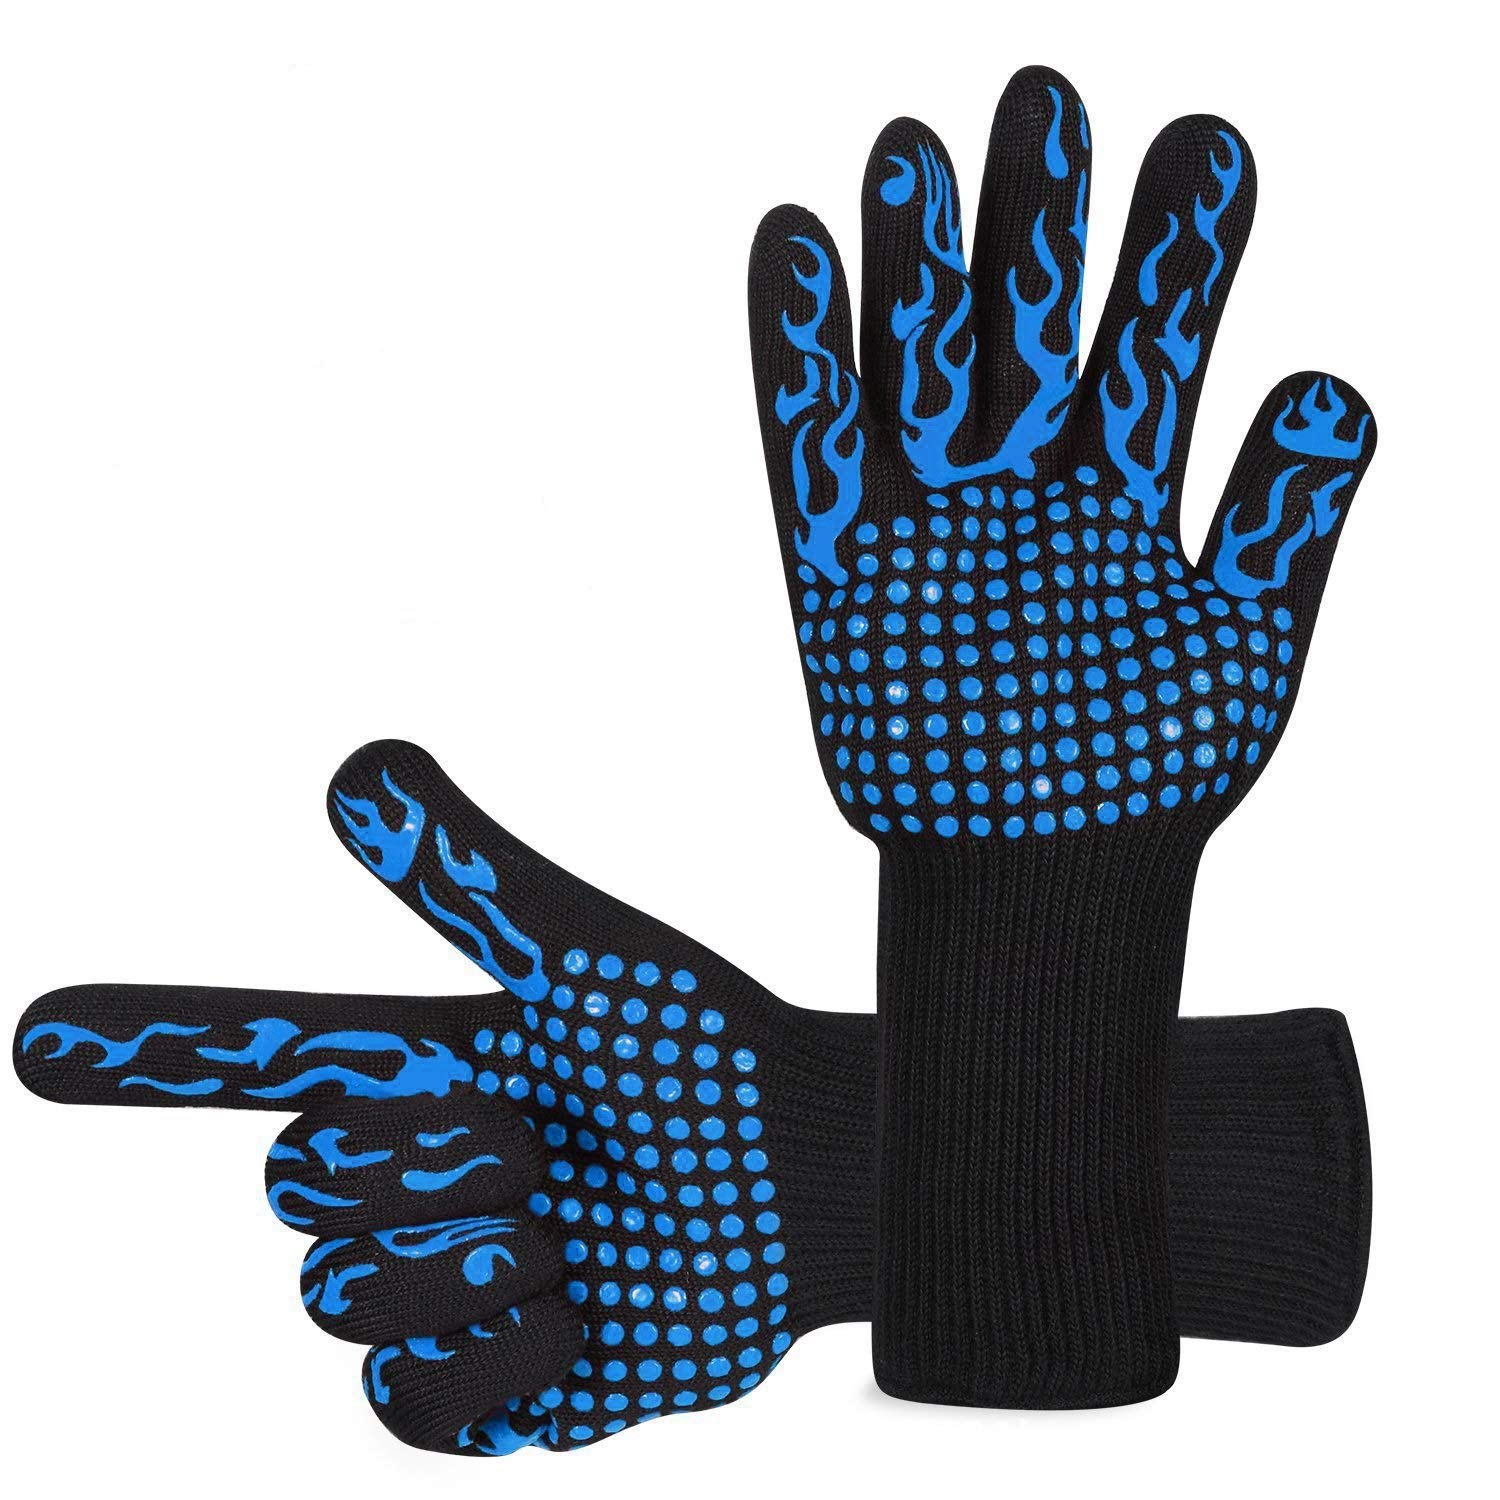 Awekris Oven Gloves Heat Resistant, BBQ Grilling Gloves for Cooking Kitchen Baking Fireplace Grilling, Blue